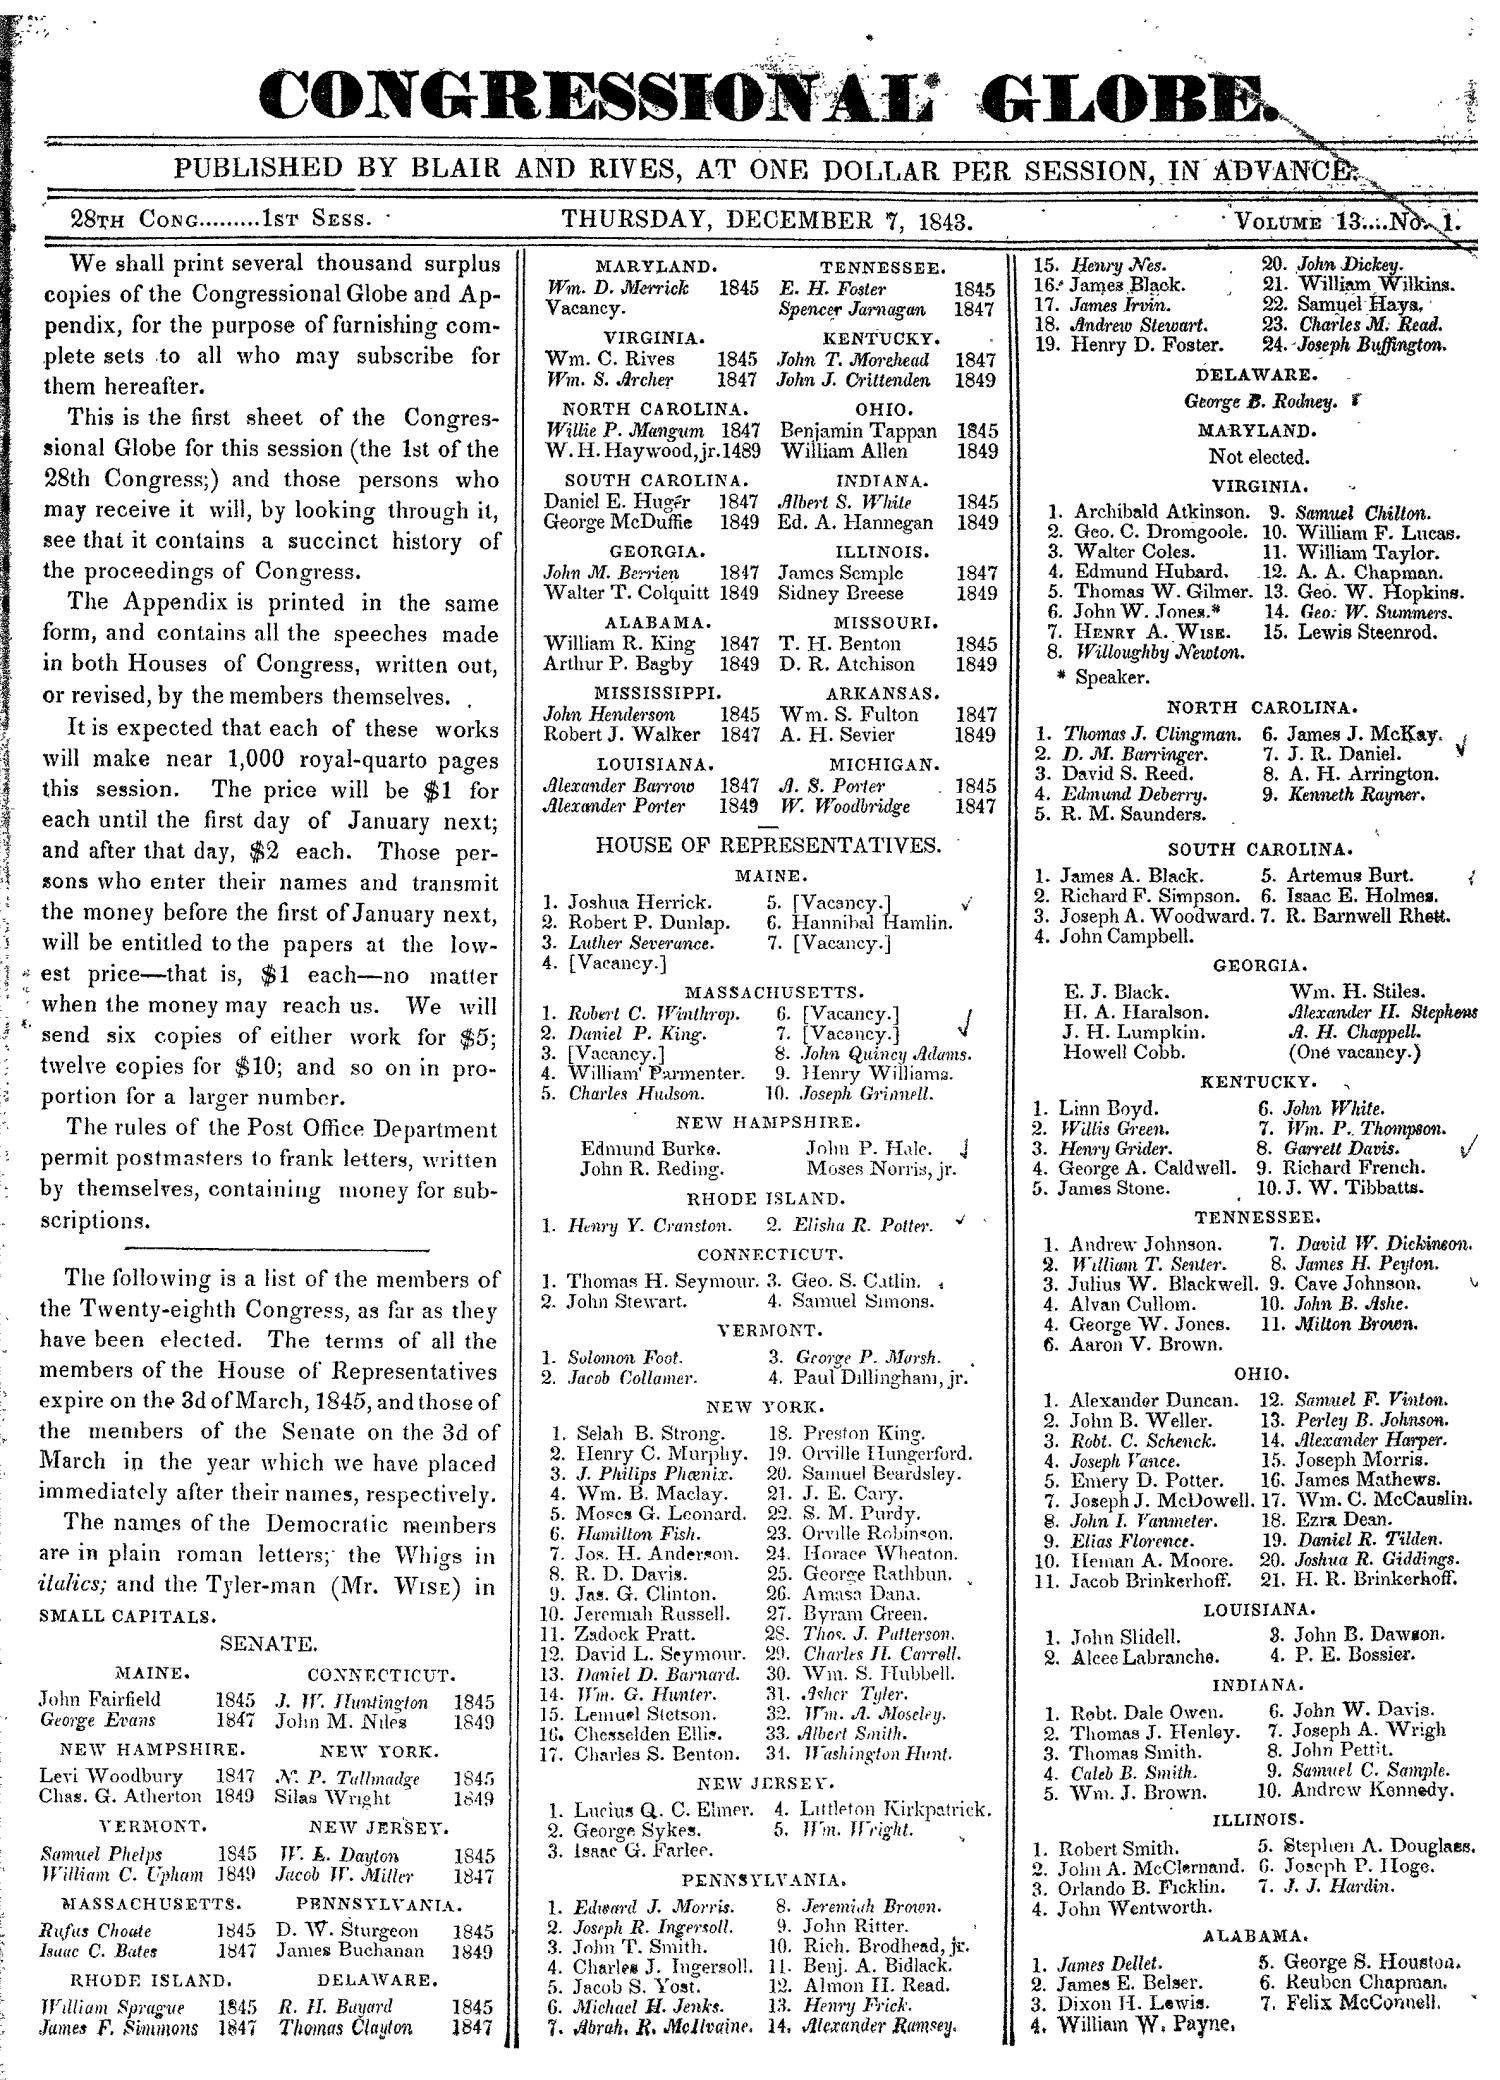 The Congressional Globe, Volume 13, Part 1: Twenty-Eighth Congress, First Session                                                                                                      None